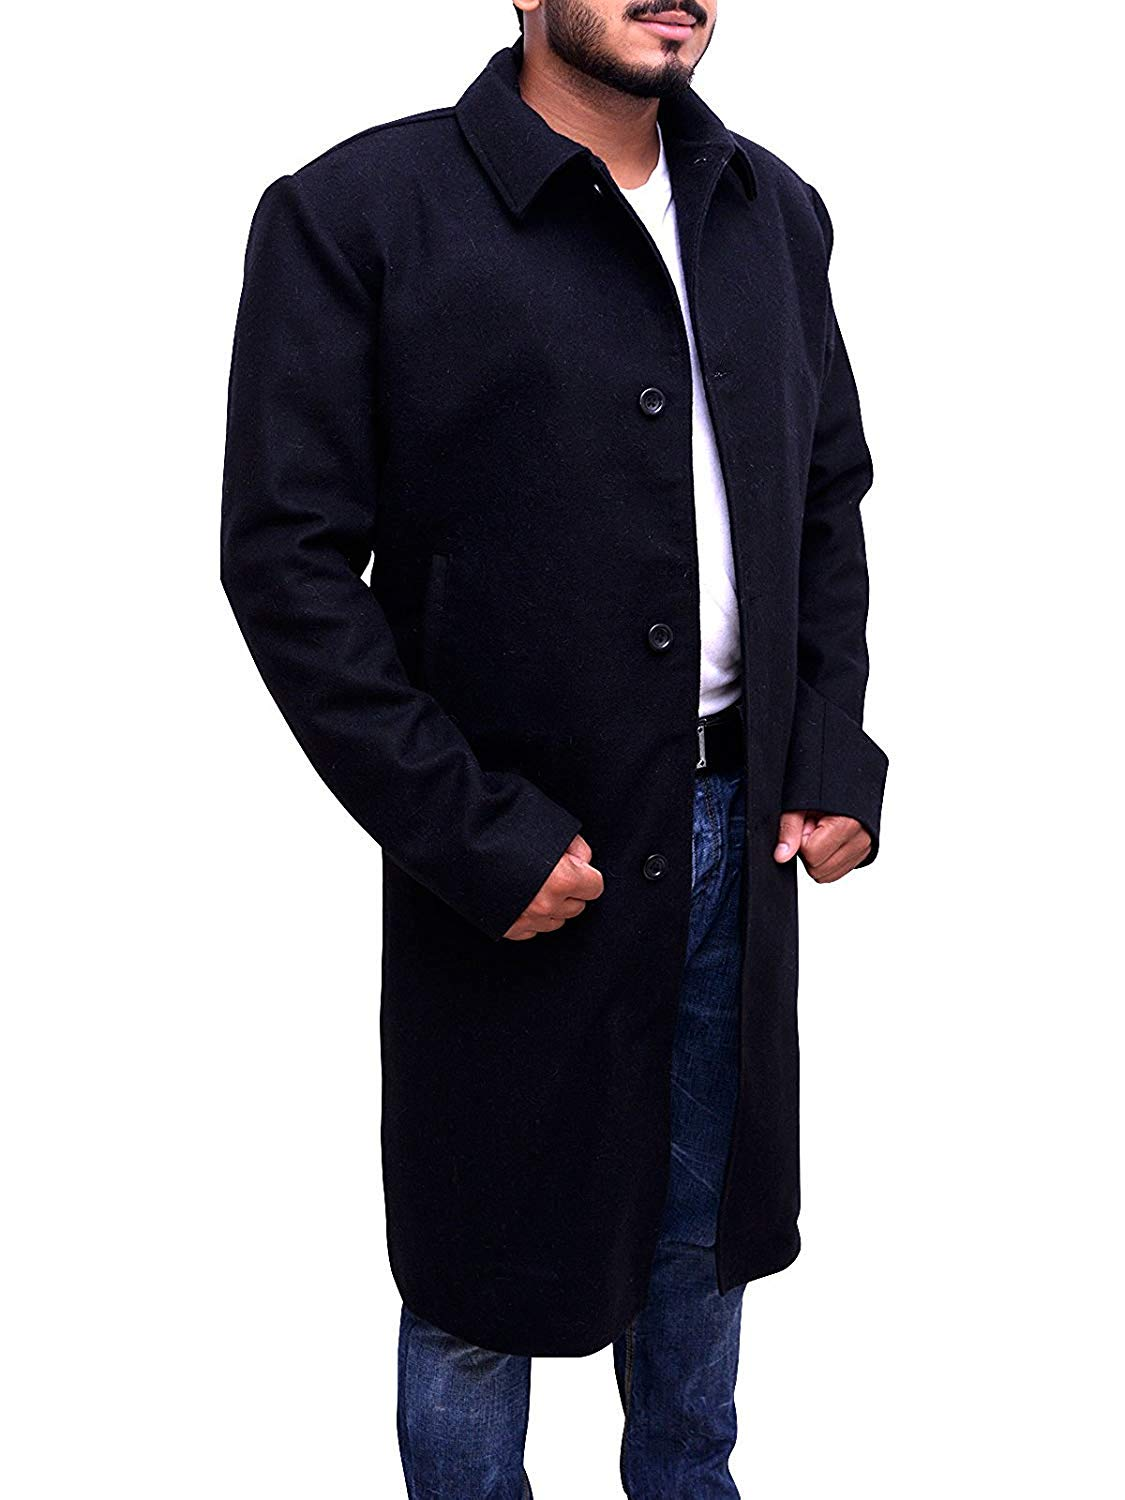 Trendhoop Justified Style Black Wool Long Trench Coat Warm Jacket at Amazon Men's Clothing store: